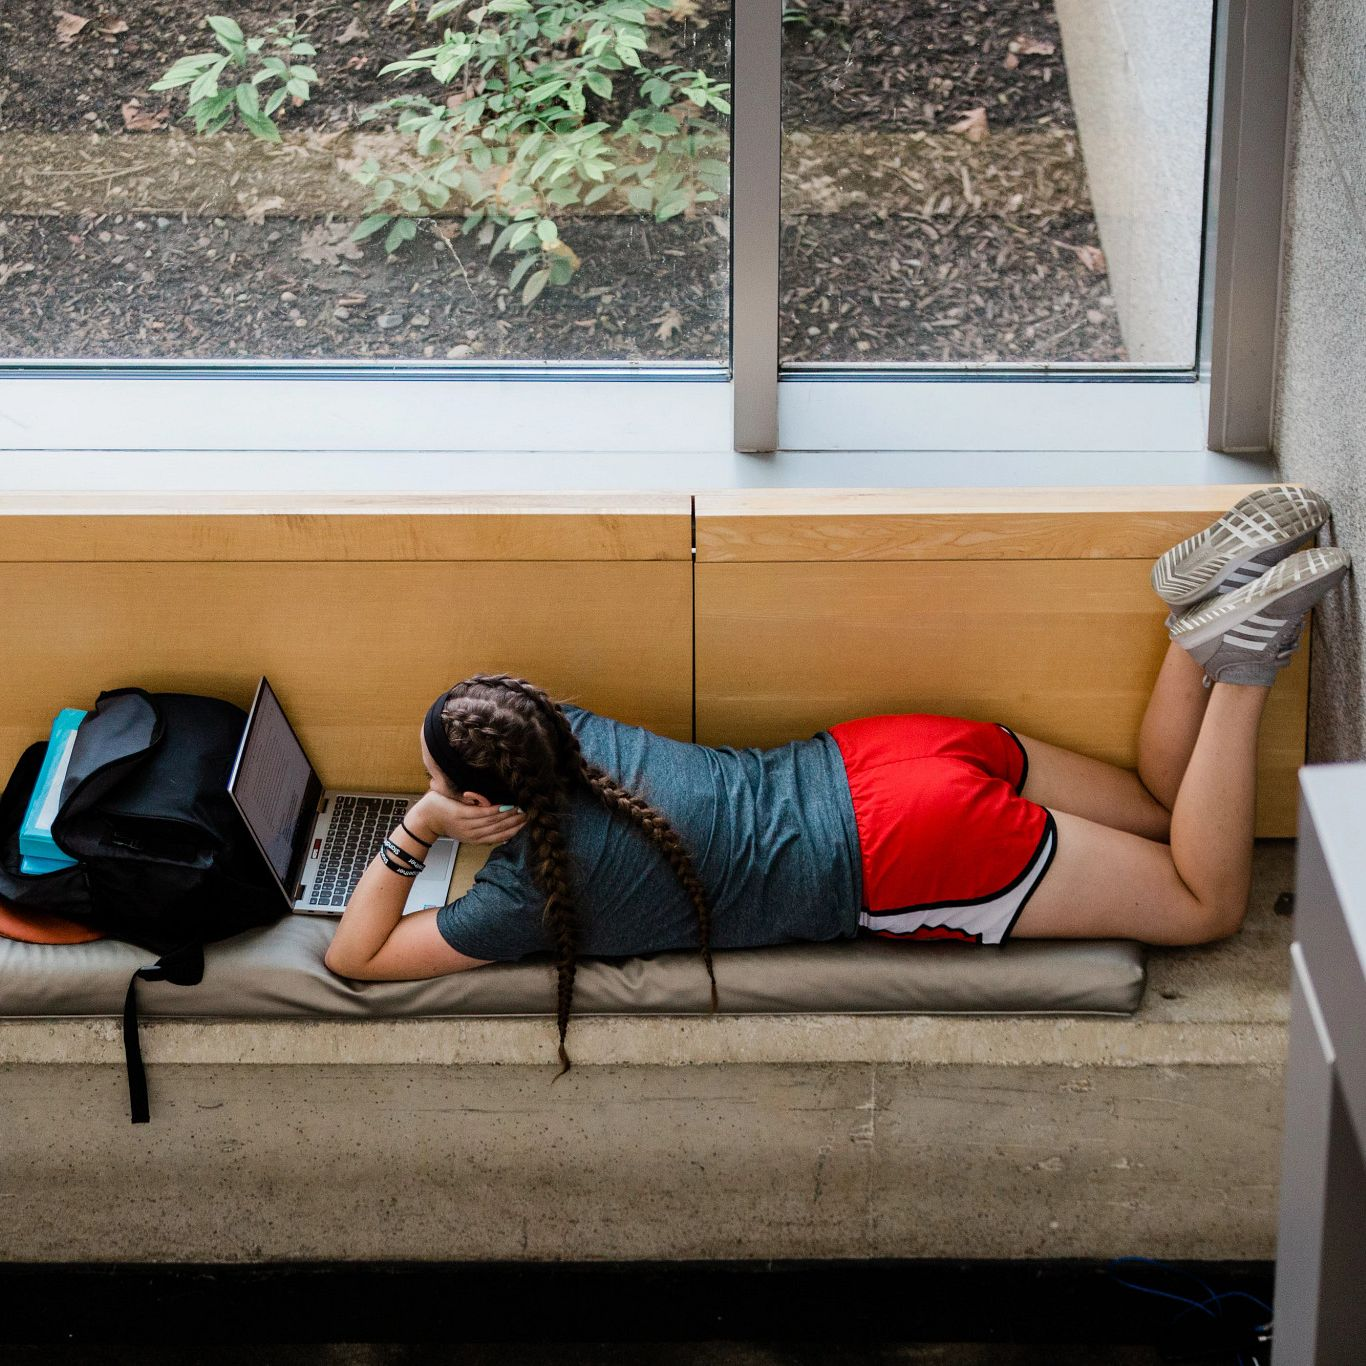 Student lying on a couch looks at her laptop